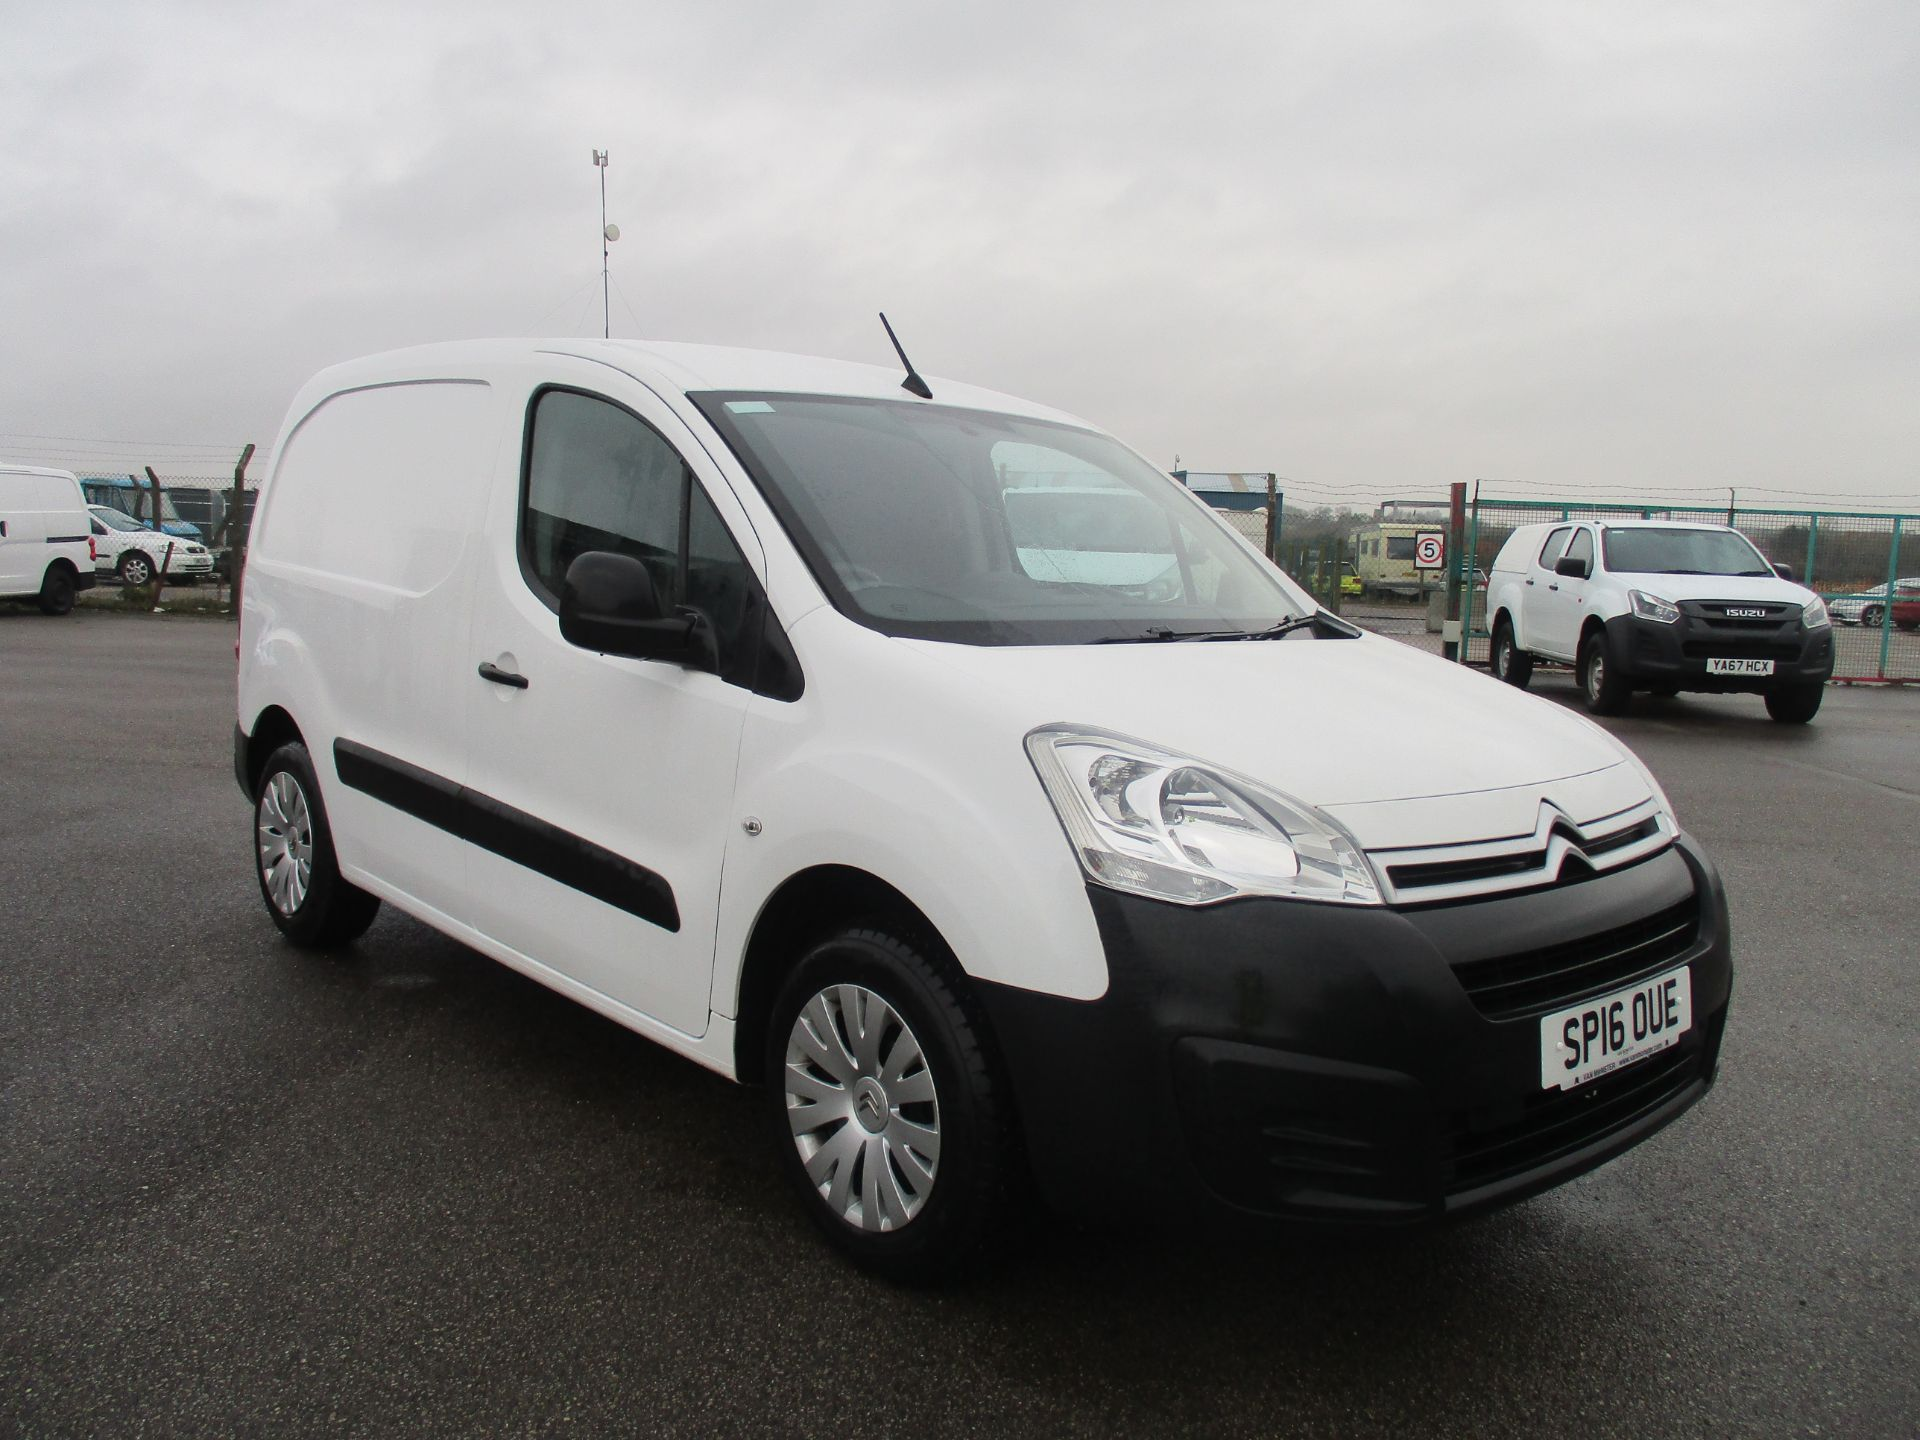 2016 Citroen Berlingo L1 DIESEL 1.6 HDI 625KG ENTERPRISE 75PS EURO 5. AIR CON, 3 SEATER (SP16OUE)